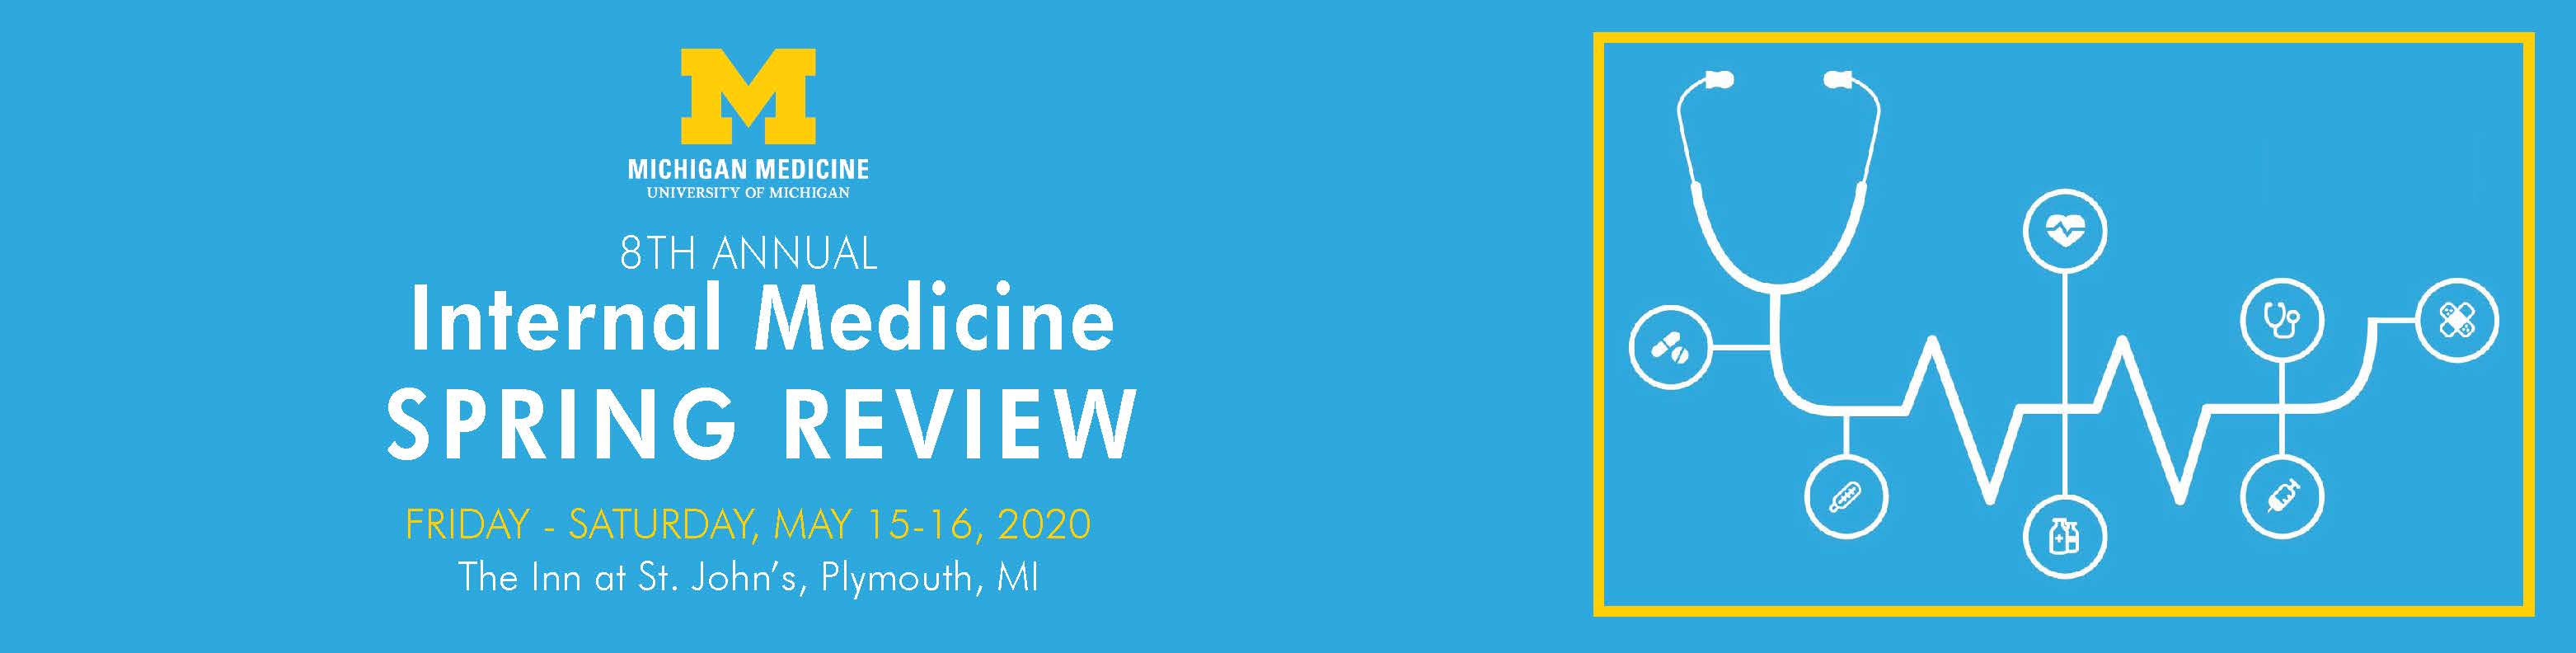 8th Annual Internal Medicine Spring Review